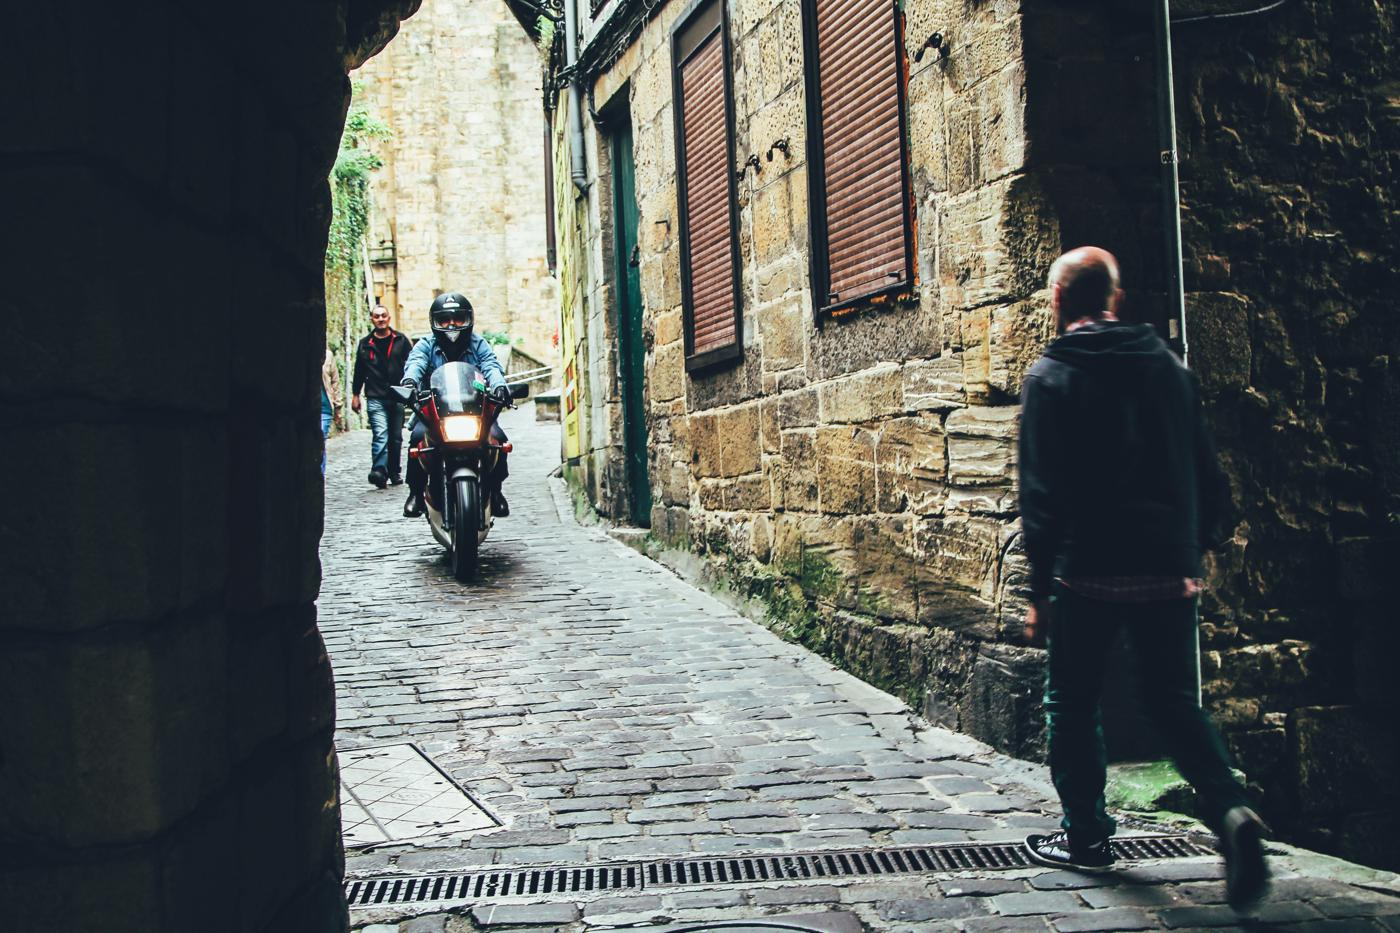 Cobbled Streets, Alley Ways And Seafood... Fish, Monkfish, Hake, Restaurant Ziaboga, Basque Country, Pasaia, Spain (34)